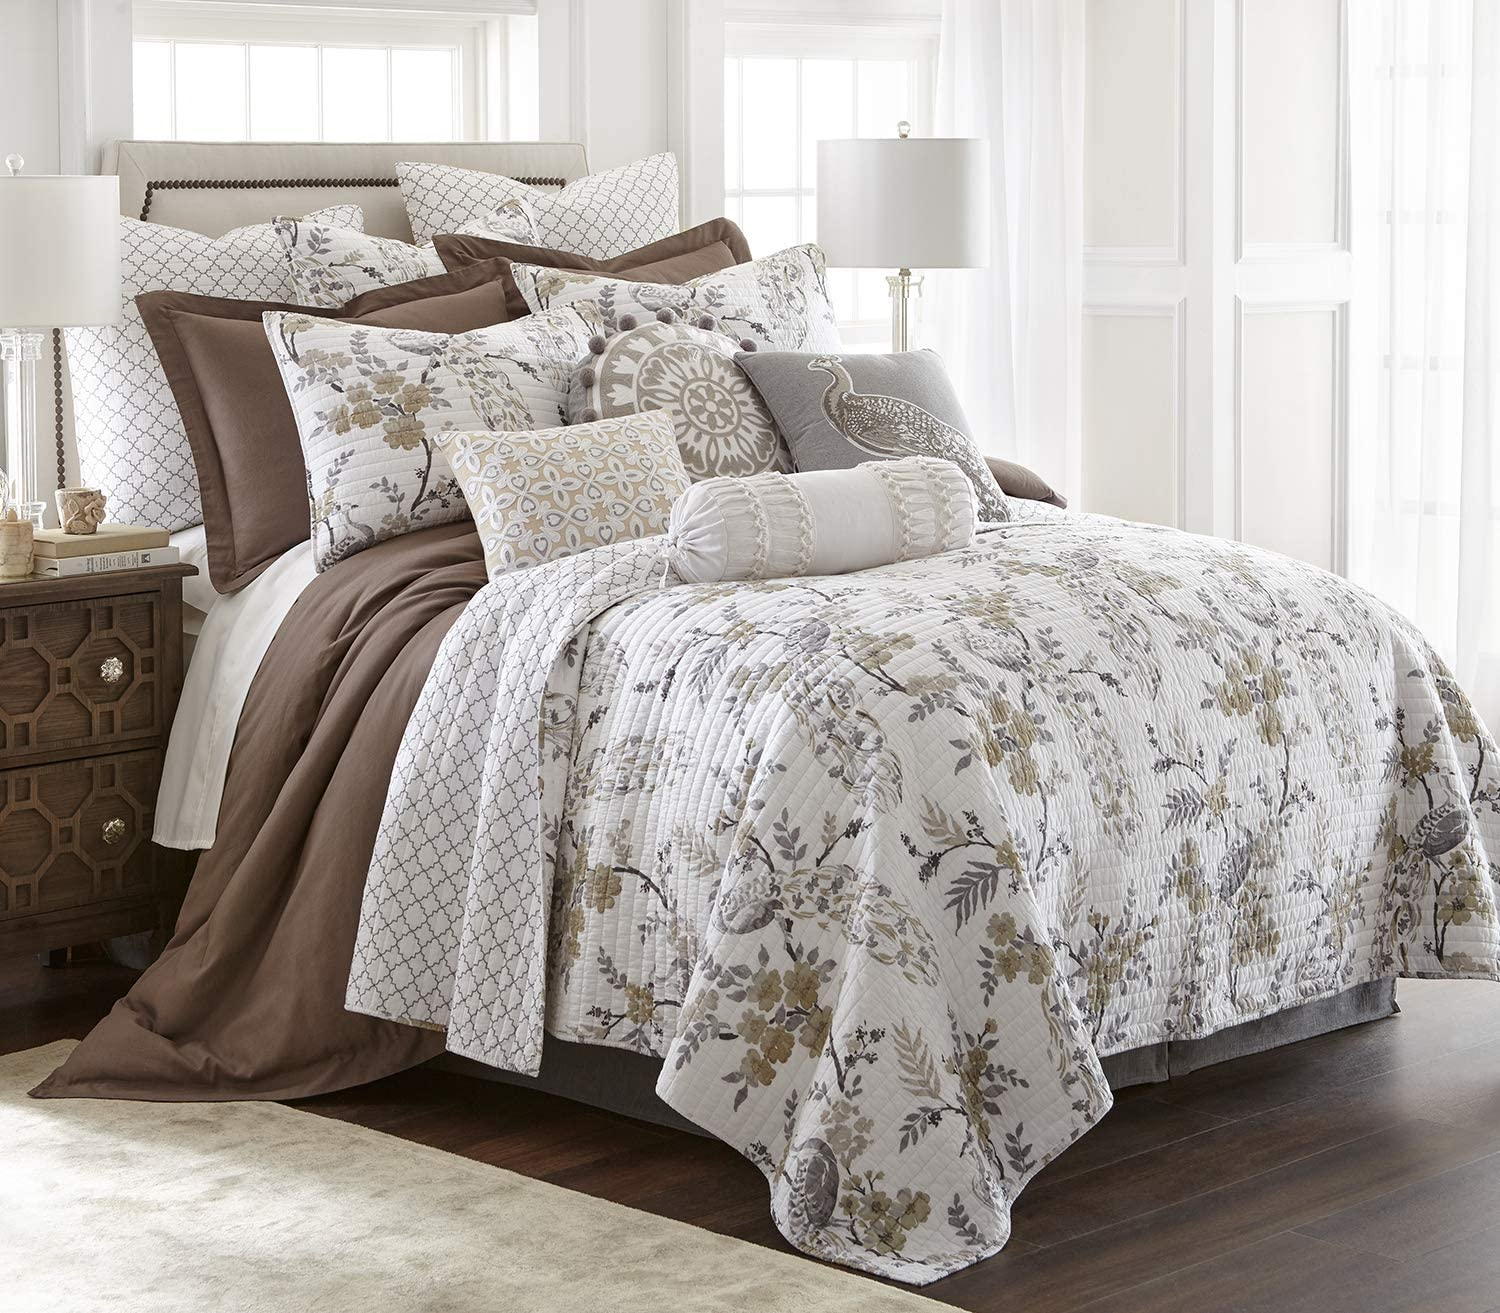 Levtex Home - Pisa Quilt Set - Full/Queen Quilt + Two Standard Pillow Shams - Floral Contemporary Peacock - Grey and Taupe - Quilt Size (88x92in.) and Pillow Sham Size (26x20in.) - Reversible - Cotton